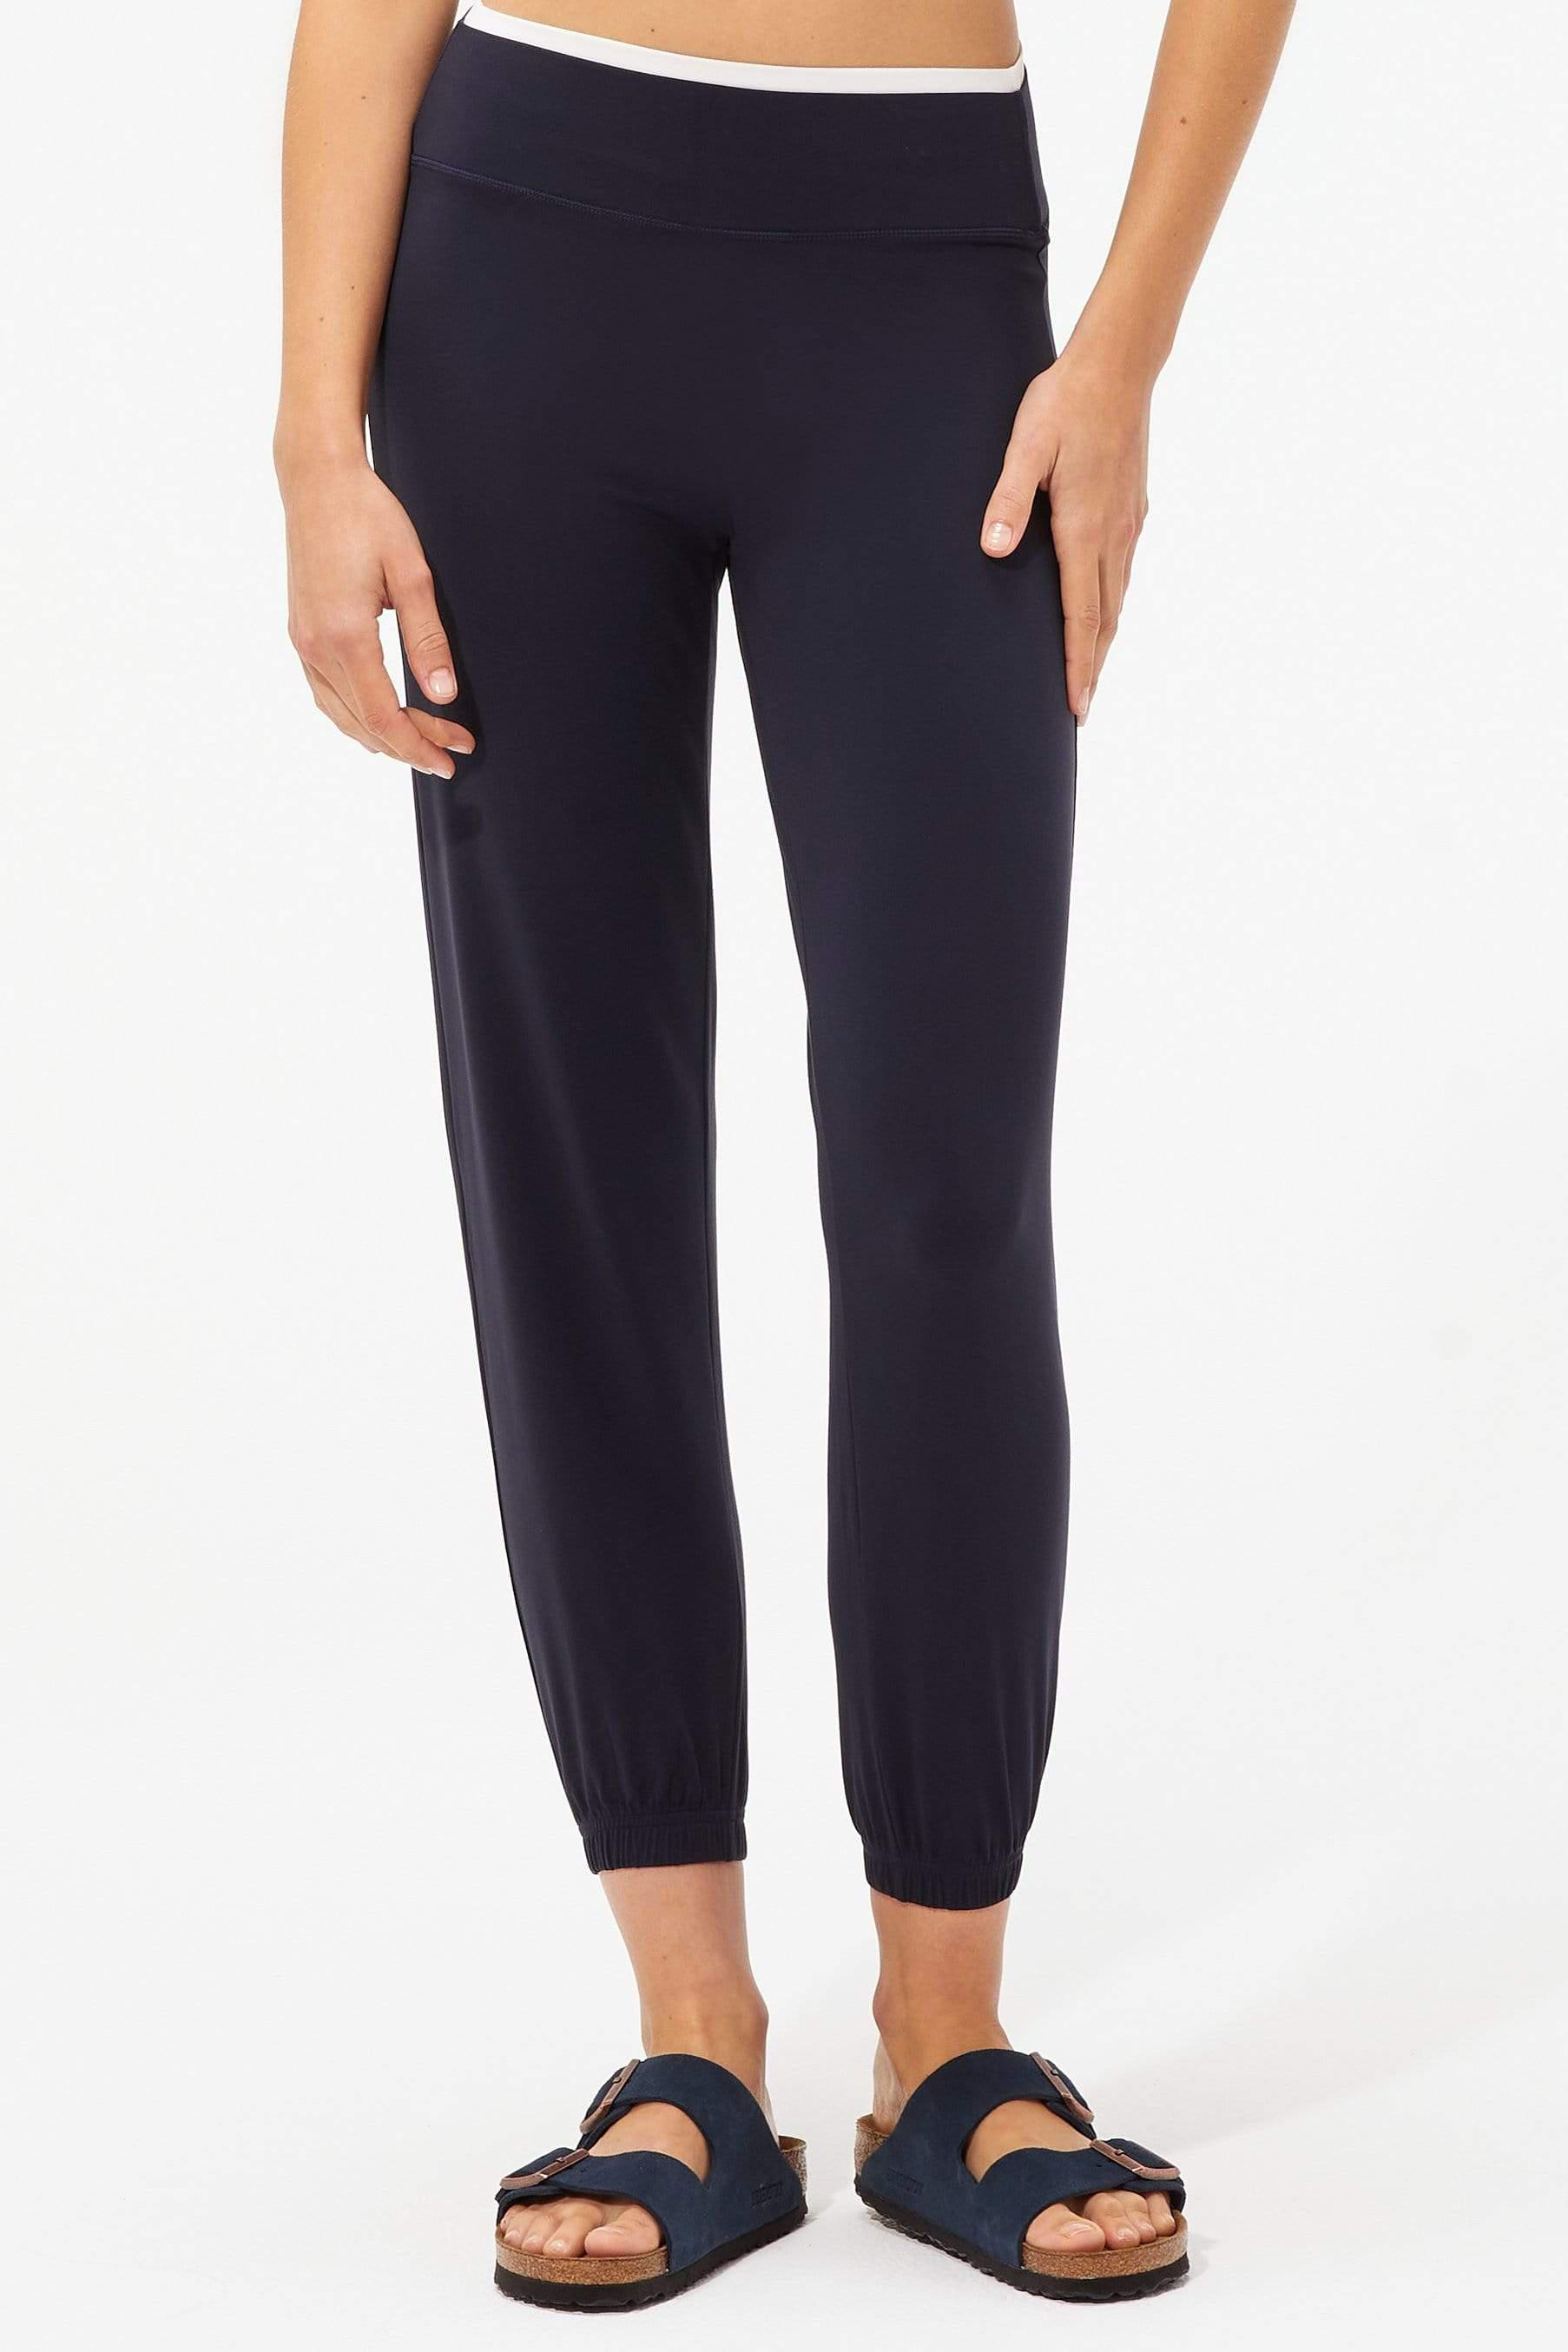 Lucie Low Rise Airweight Jogger Crop - Indigo/Off White